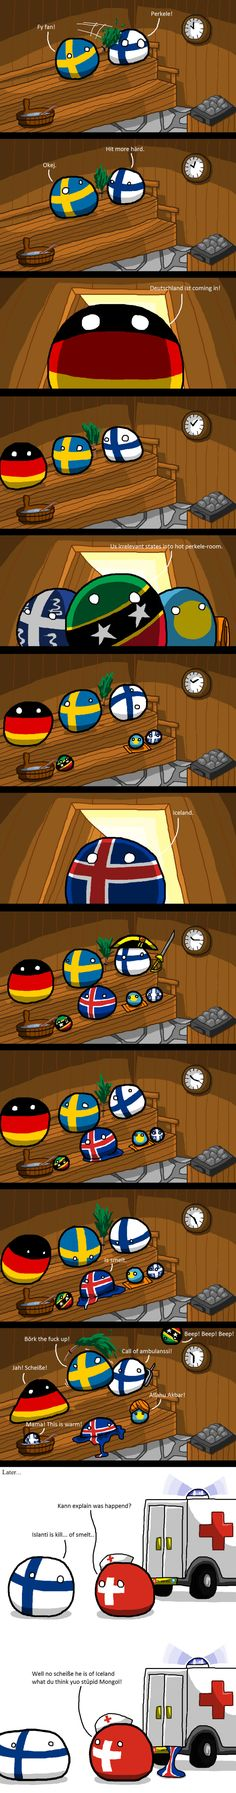 Iceland cannot into Sauna